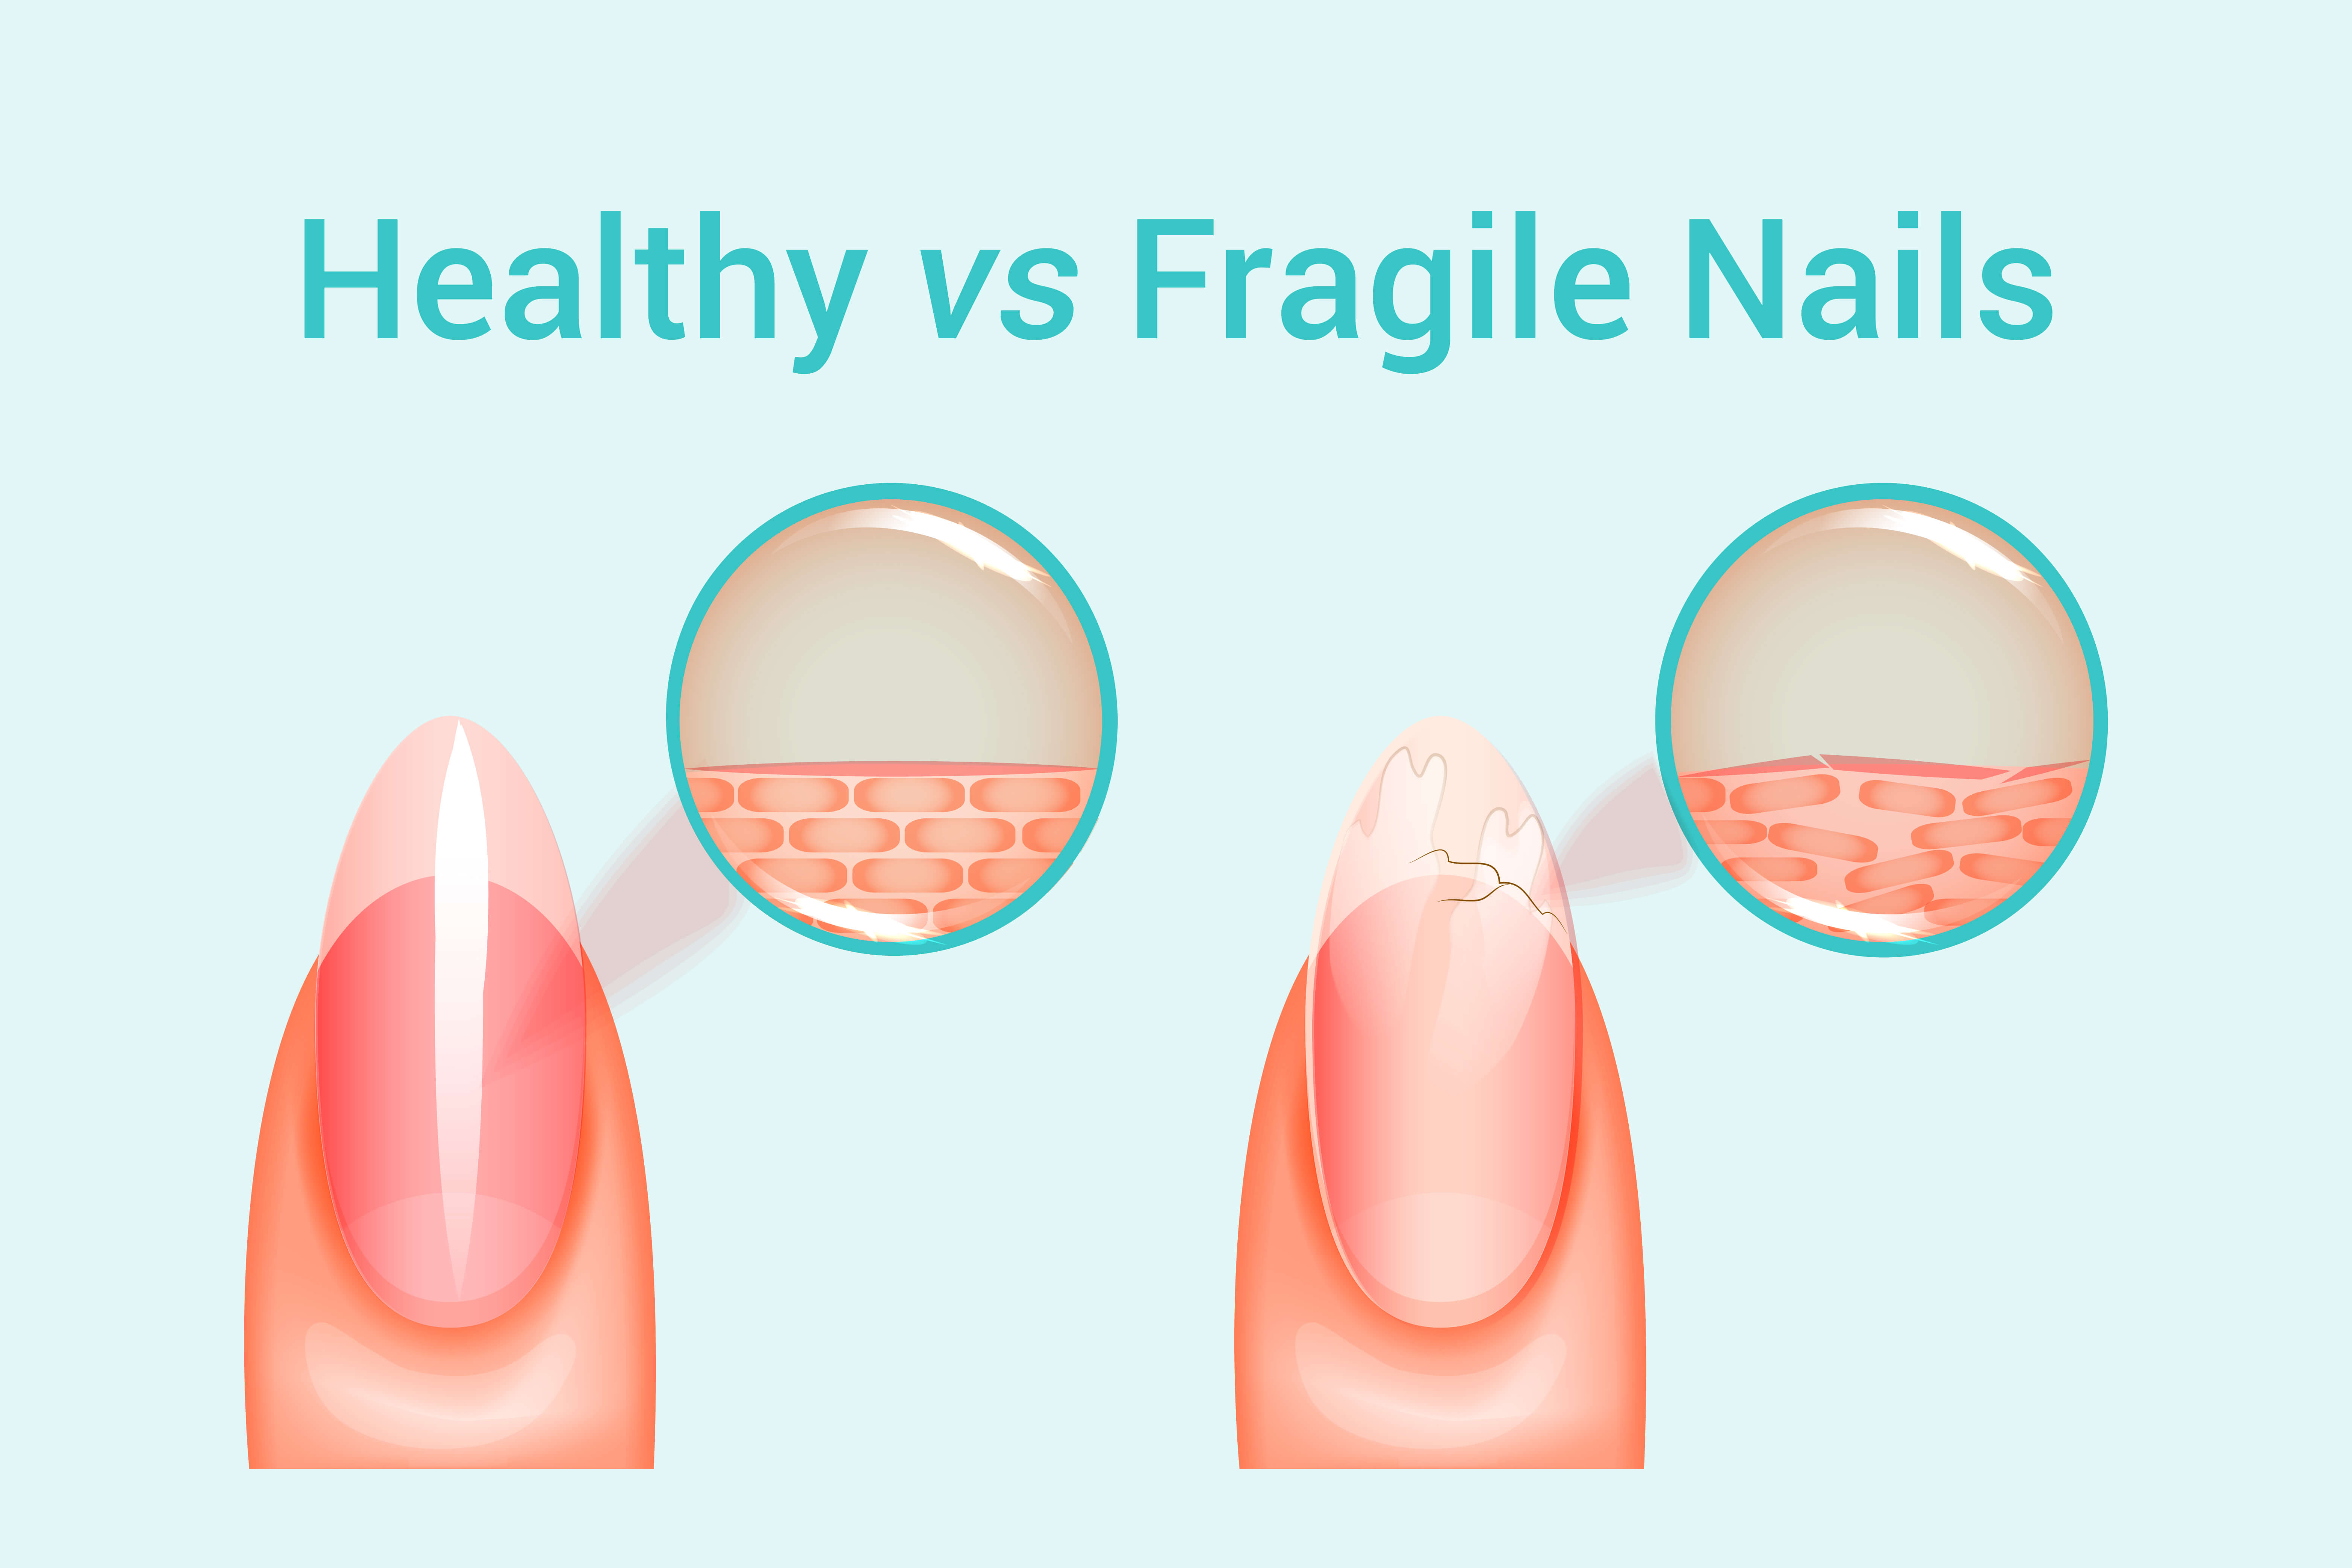 Illustration of healthy versus fragile nail